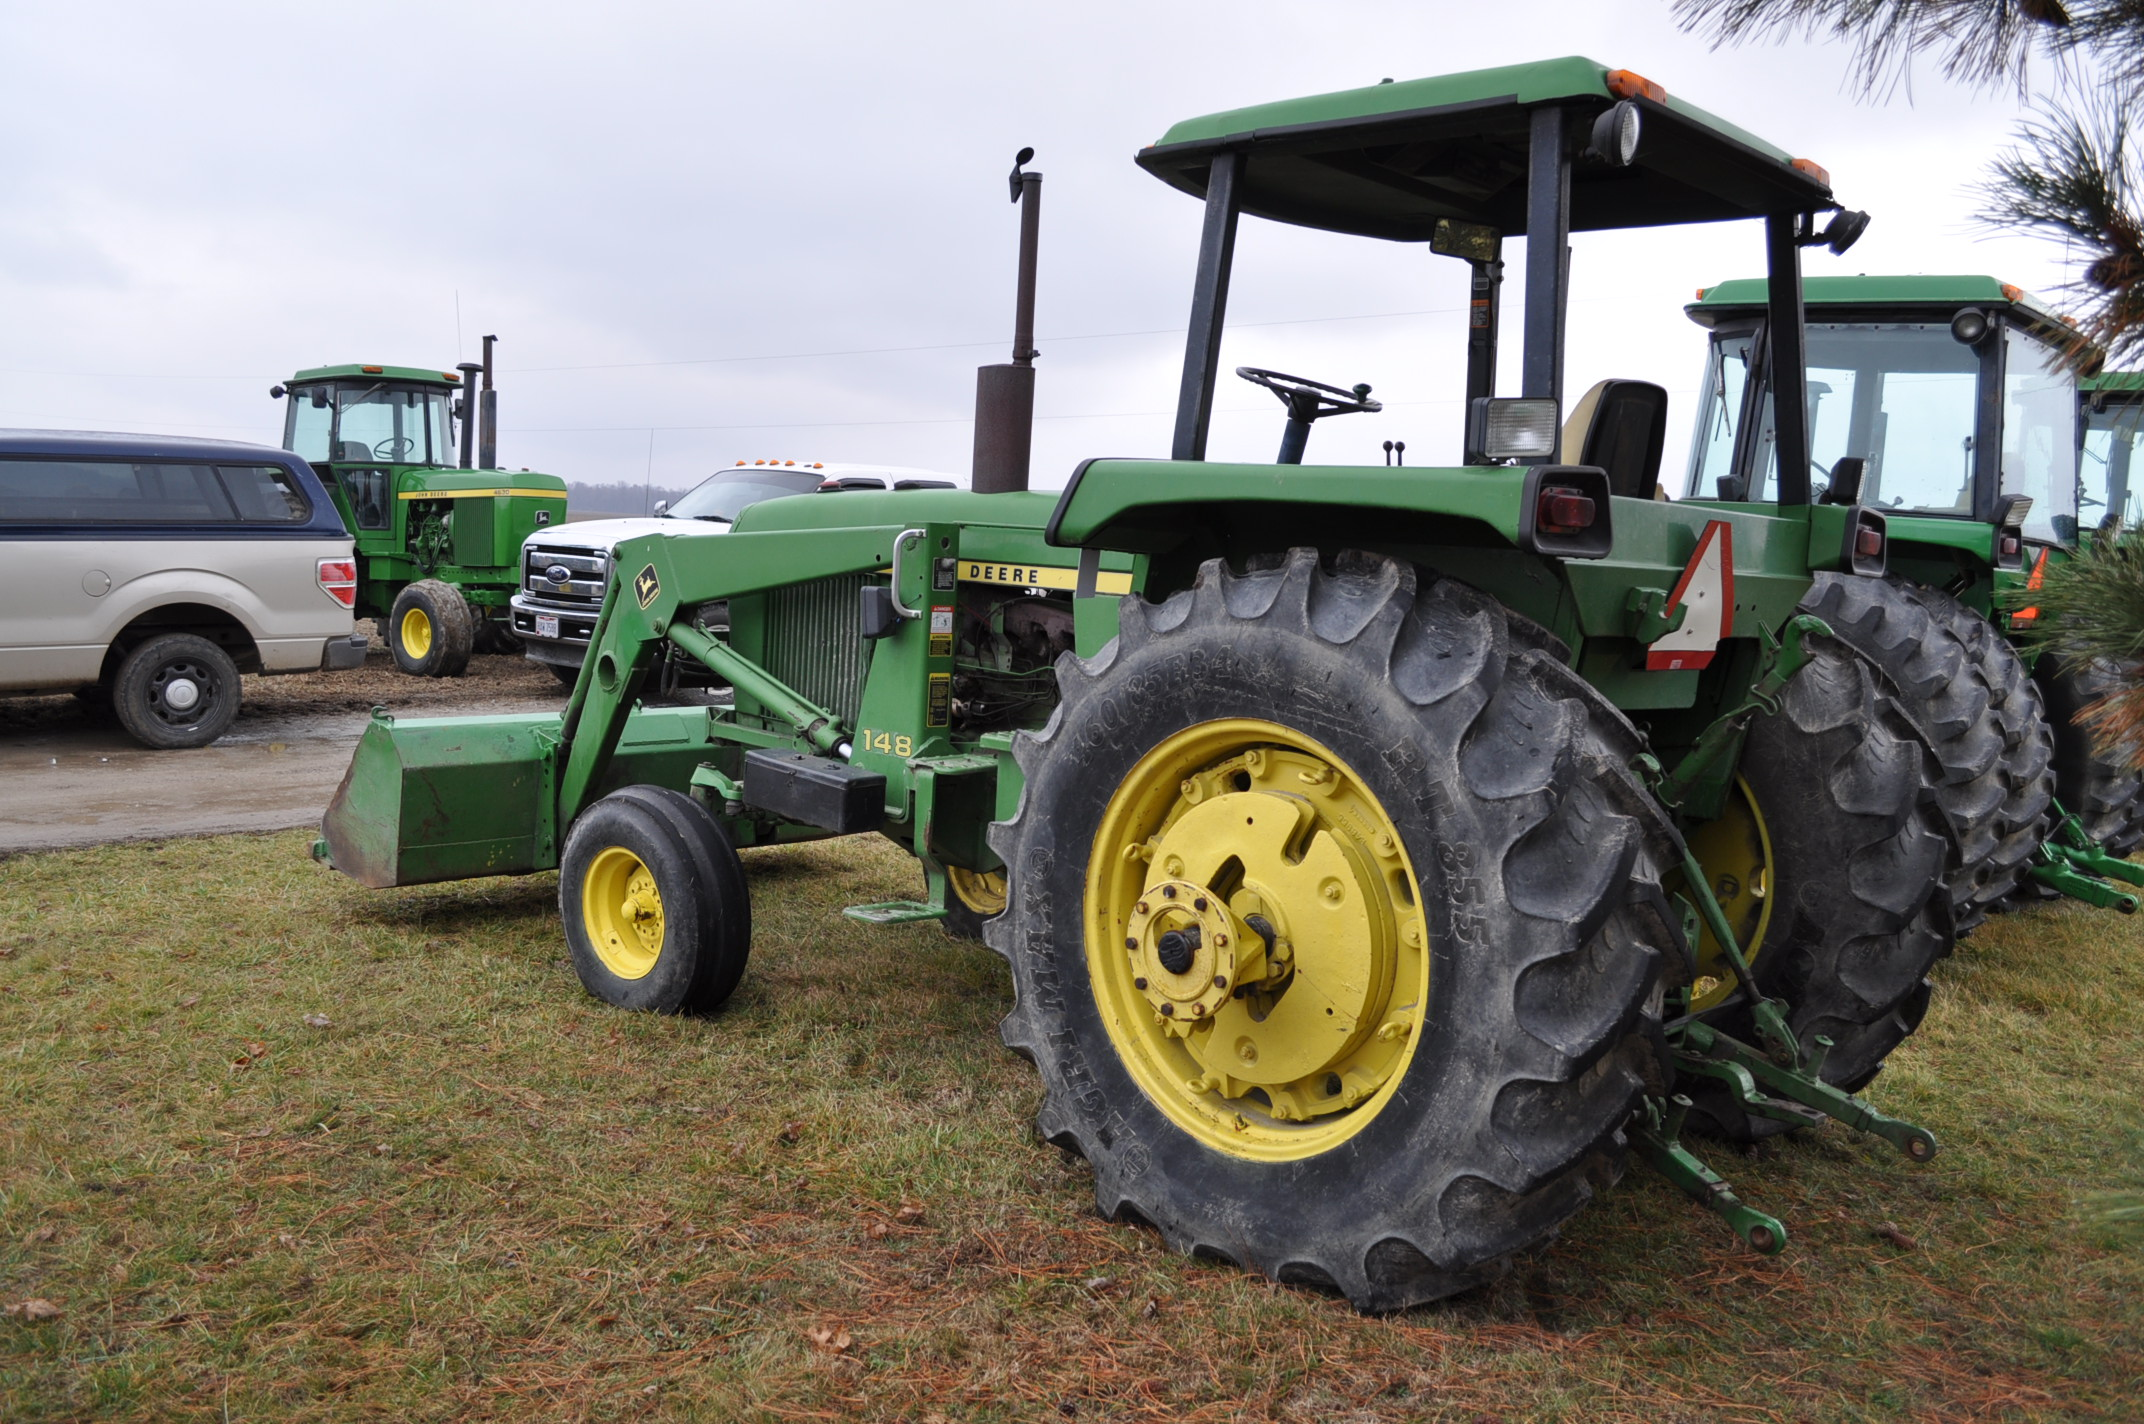 John Deere 4030 tractor, diesel, 18.4-34 rear duals, rear wts, 9.5-15 front, 4-post canopy, Syncro, - Image 2 of 26